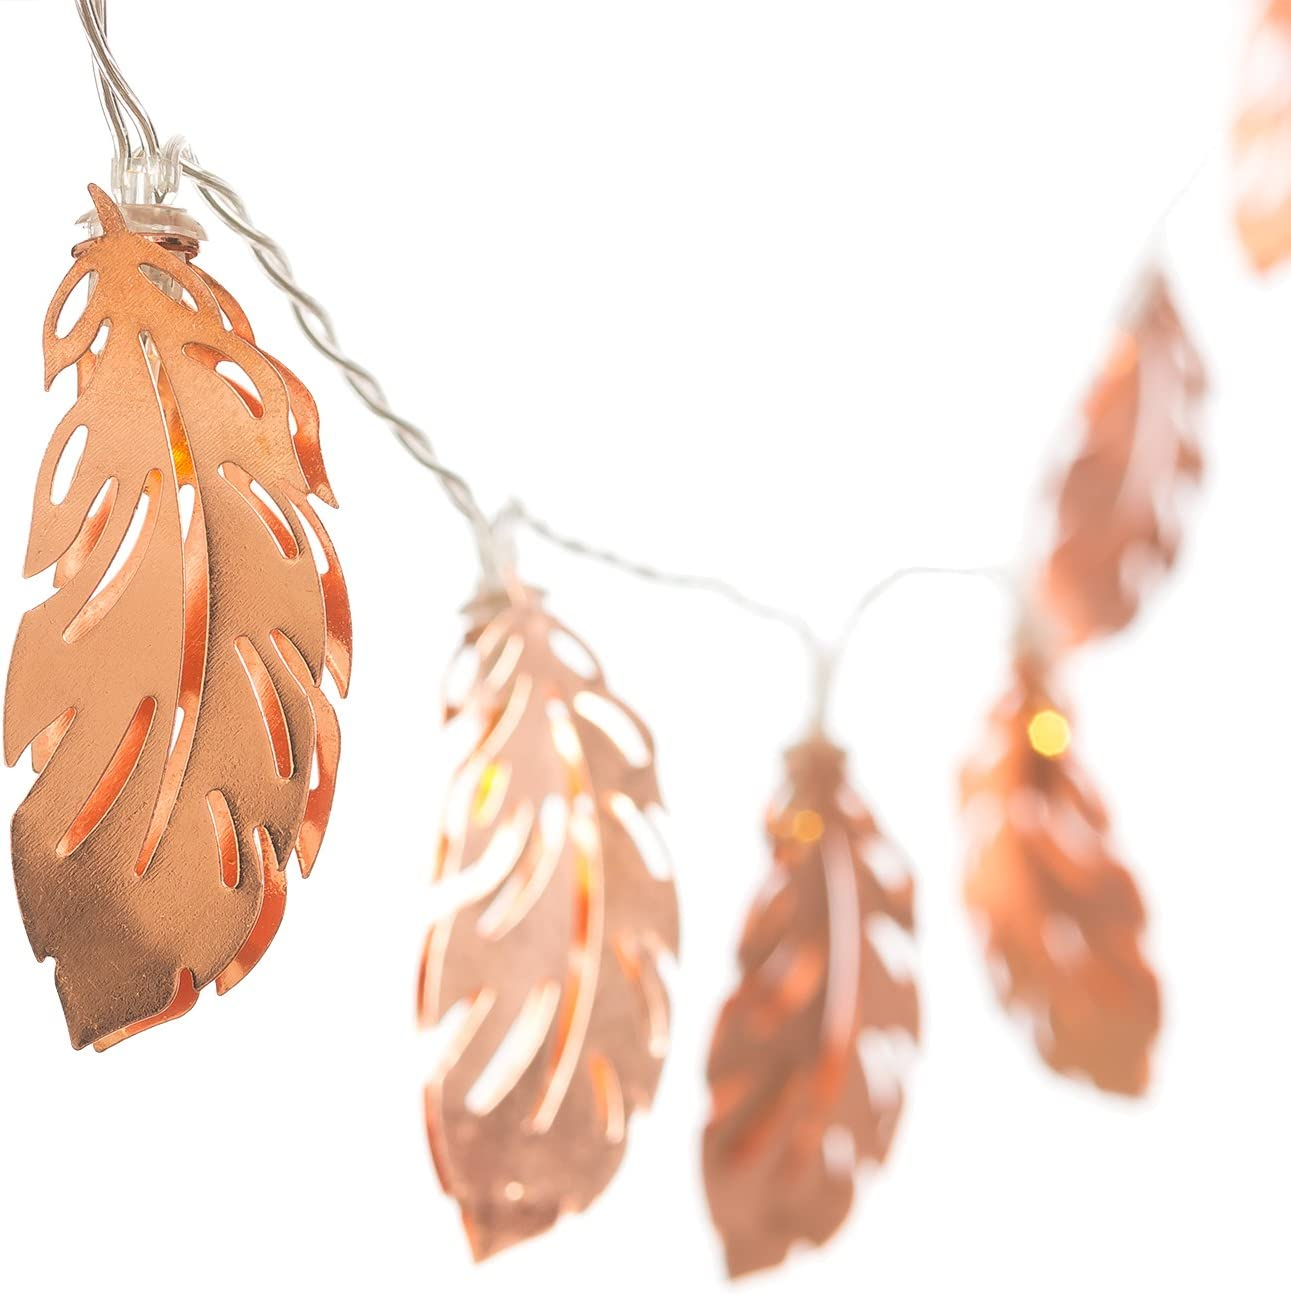 Ling's moment Rose Gold Feather Lantern String Lights 12Ft 30 LED USB & Battery Powered Copper Metal Outdoor String Light for Party Bedroom Bohemian Wall Decor